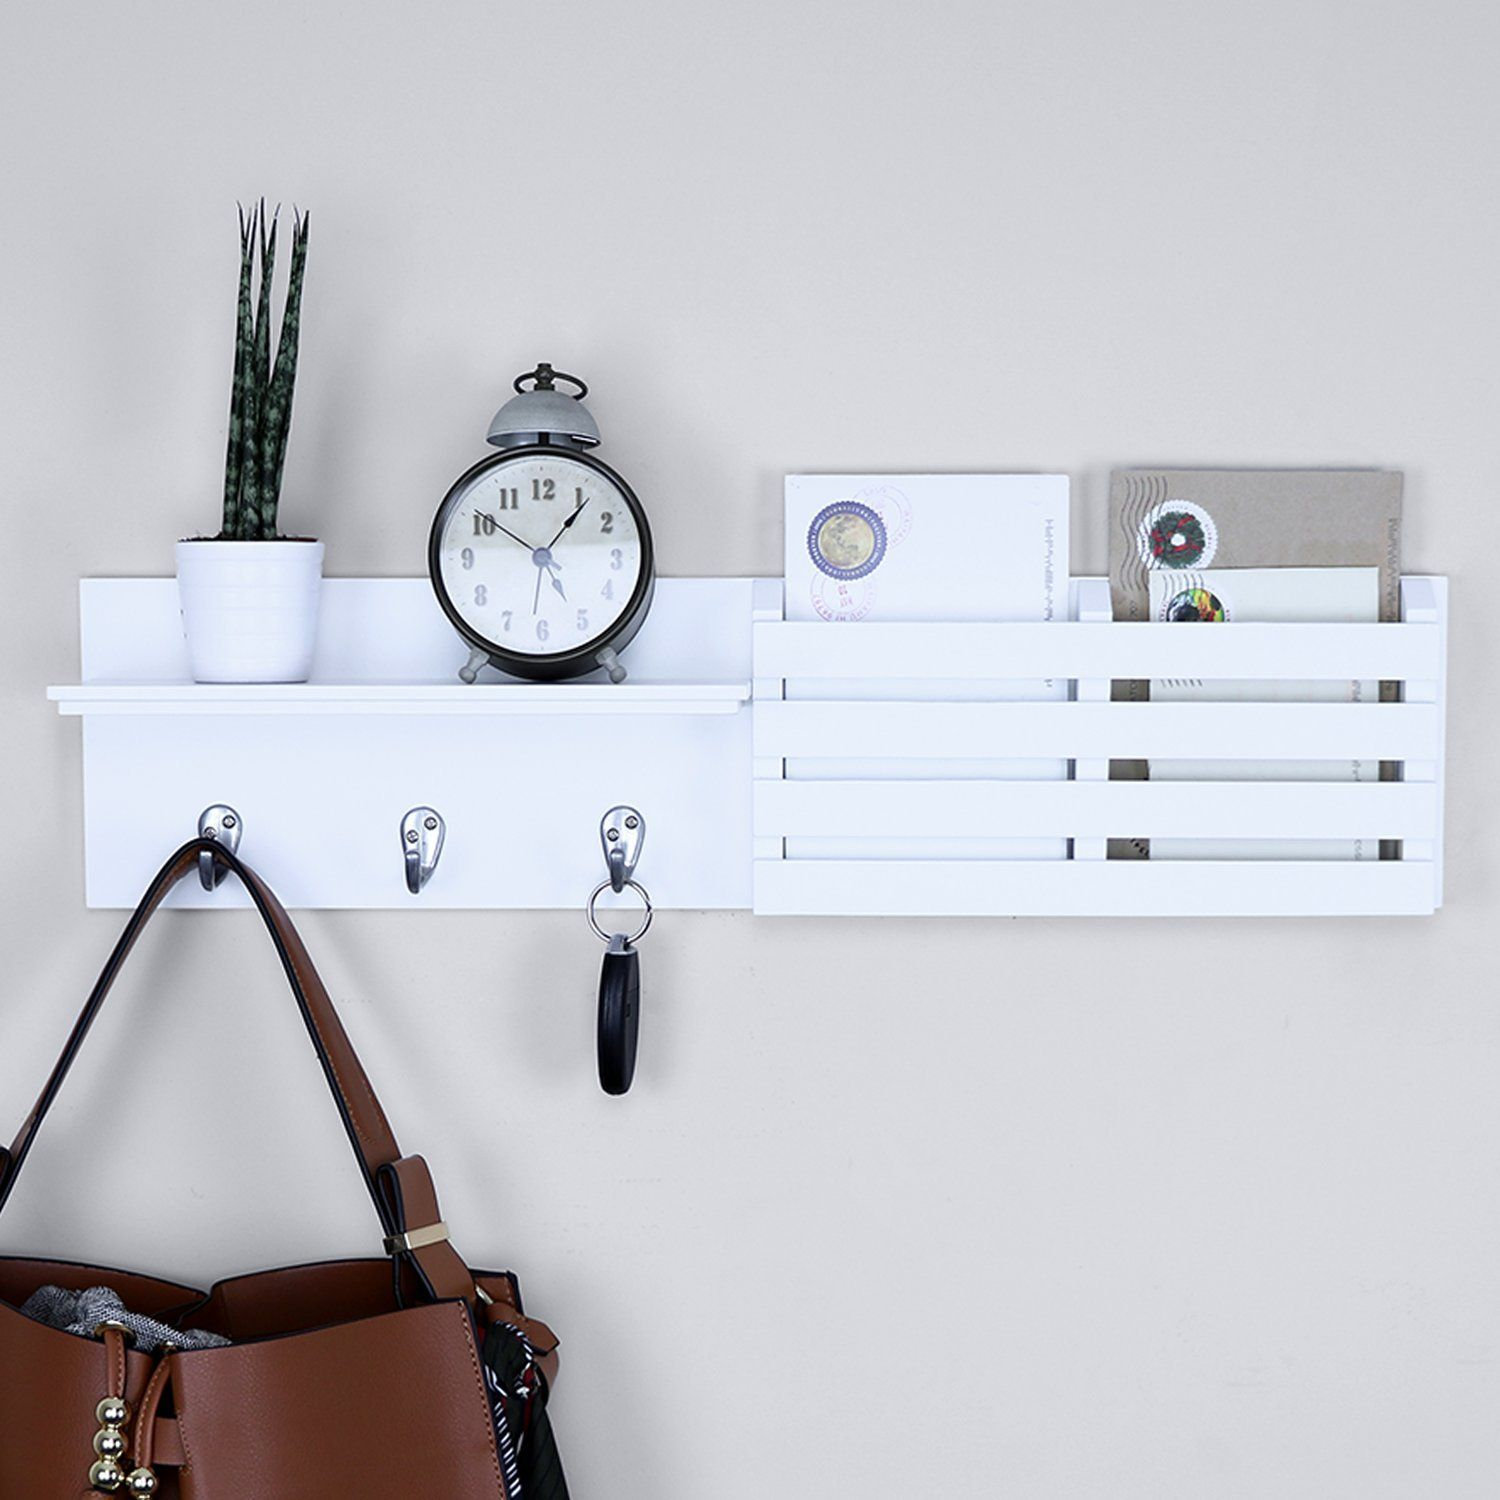 Ballucci Mail Holder And Coat Key Rack Wall Shelf Key Rack Unique Wall Shelves Wall Shelves